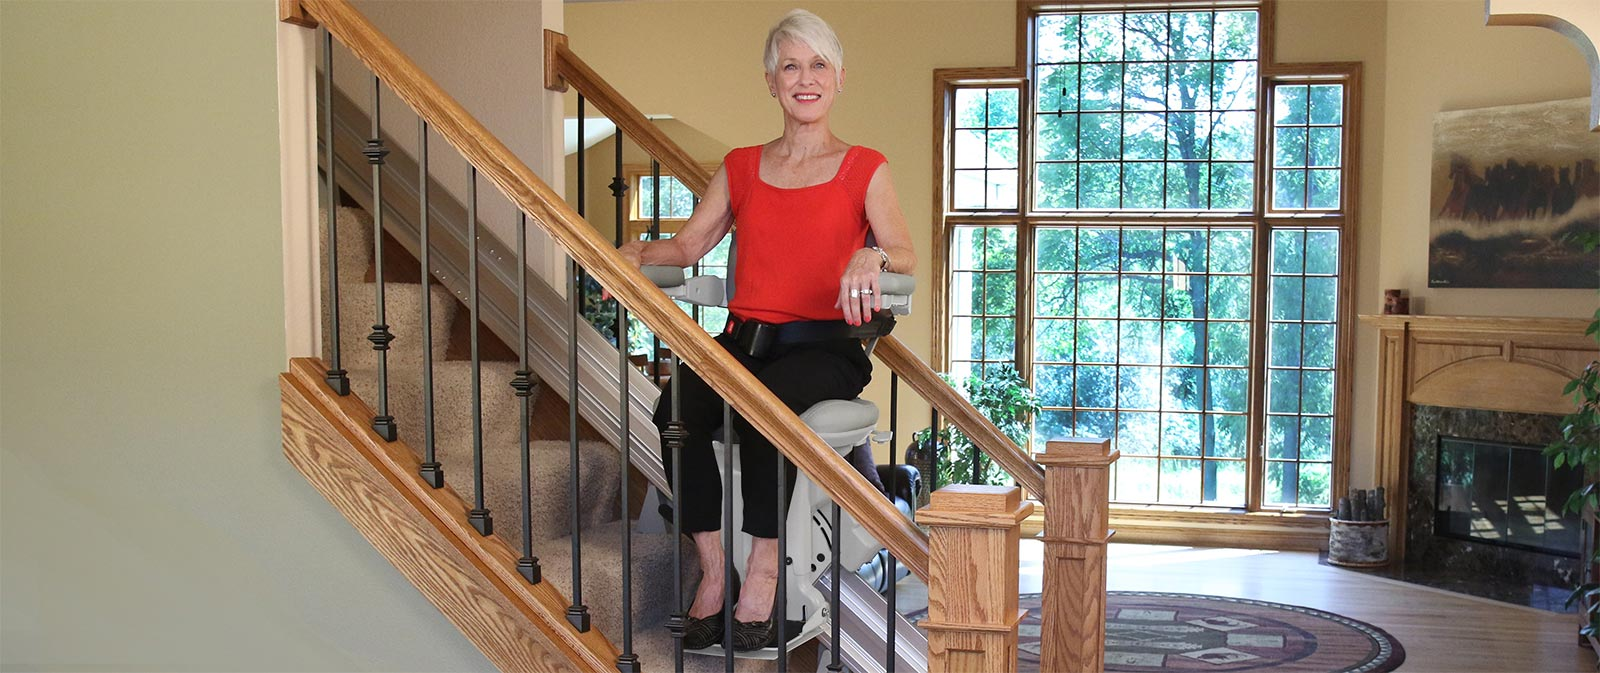 3 Reasons To Install A Stair Lift In Your Home